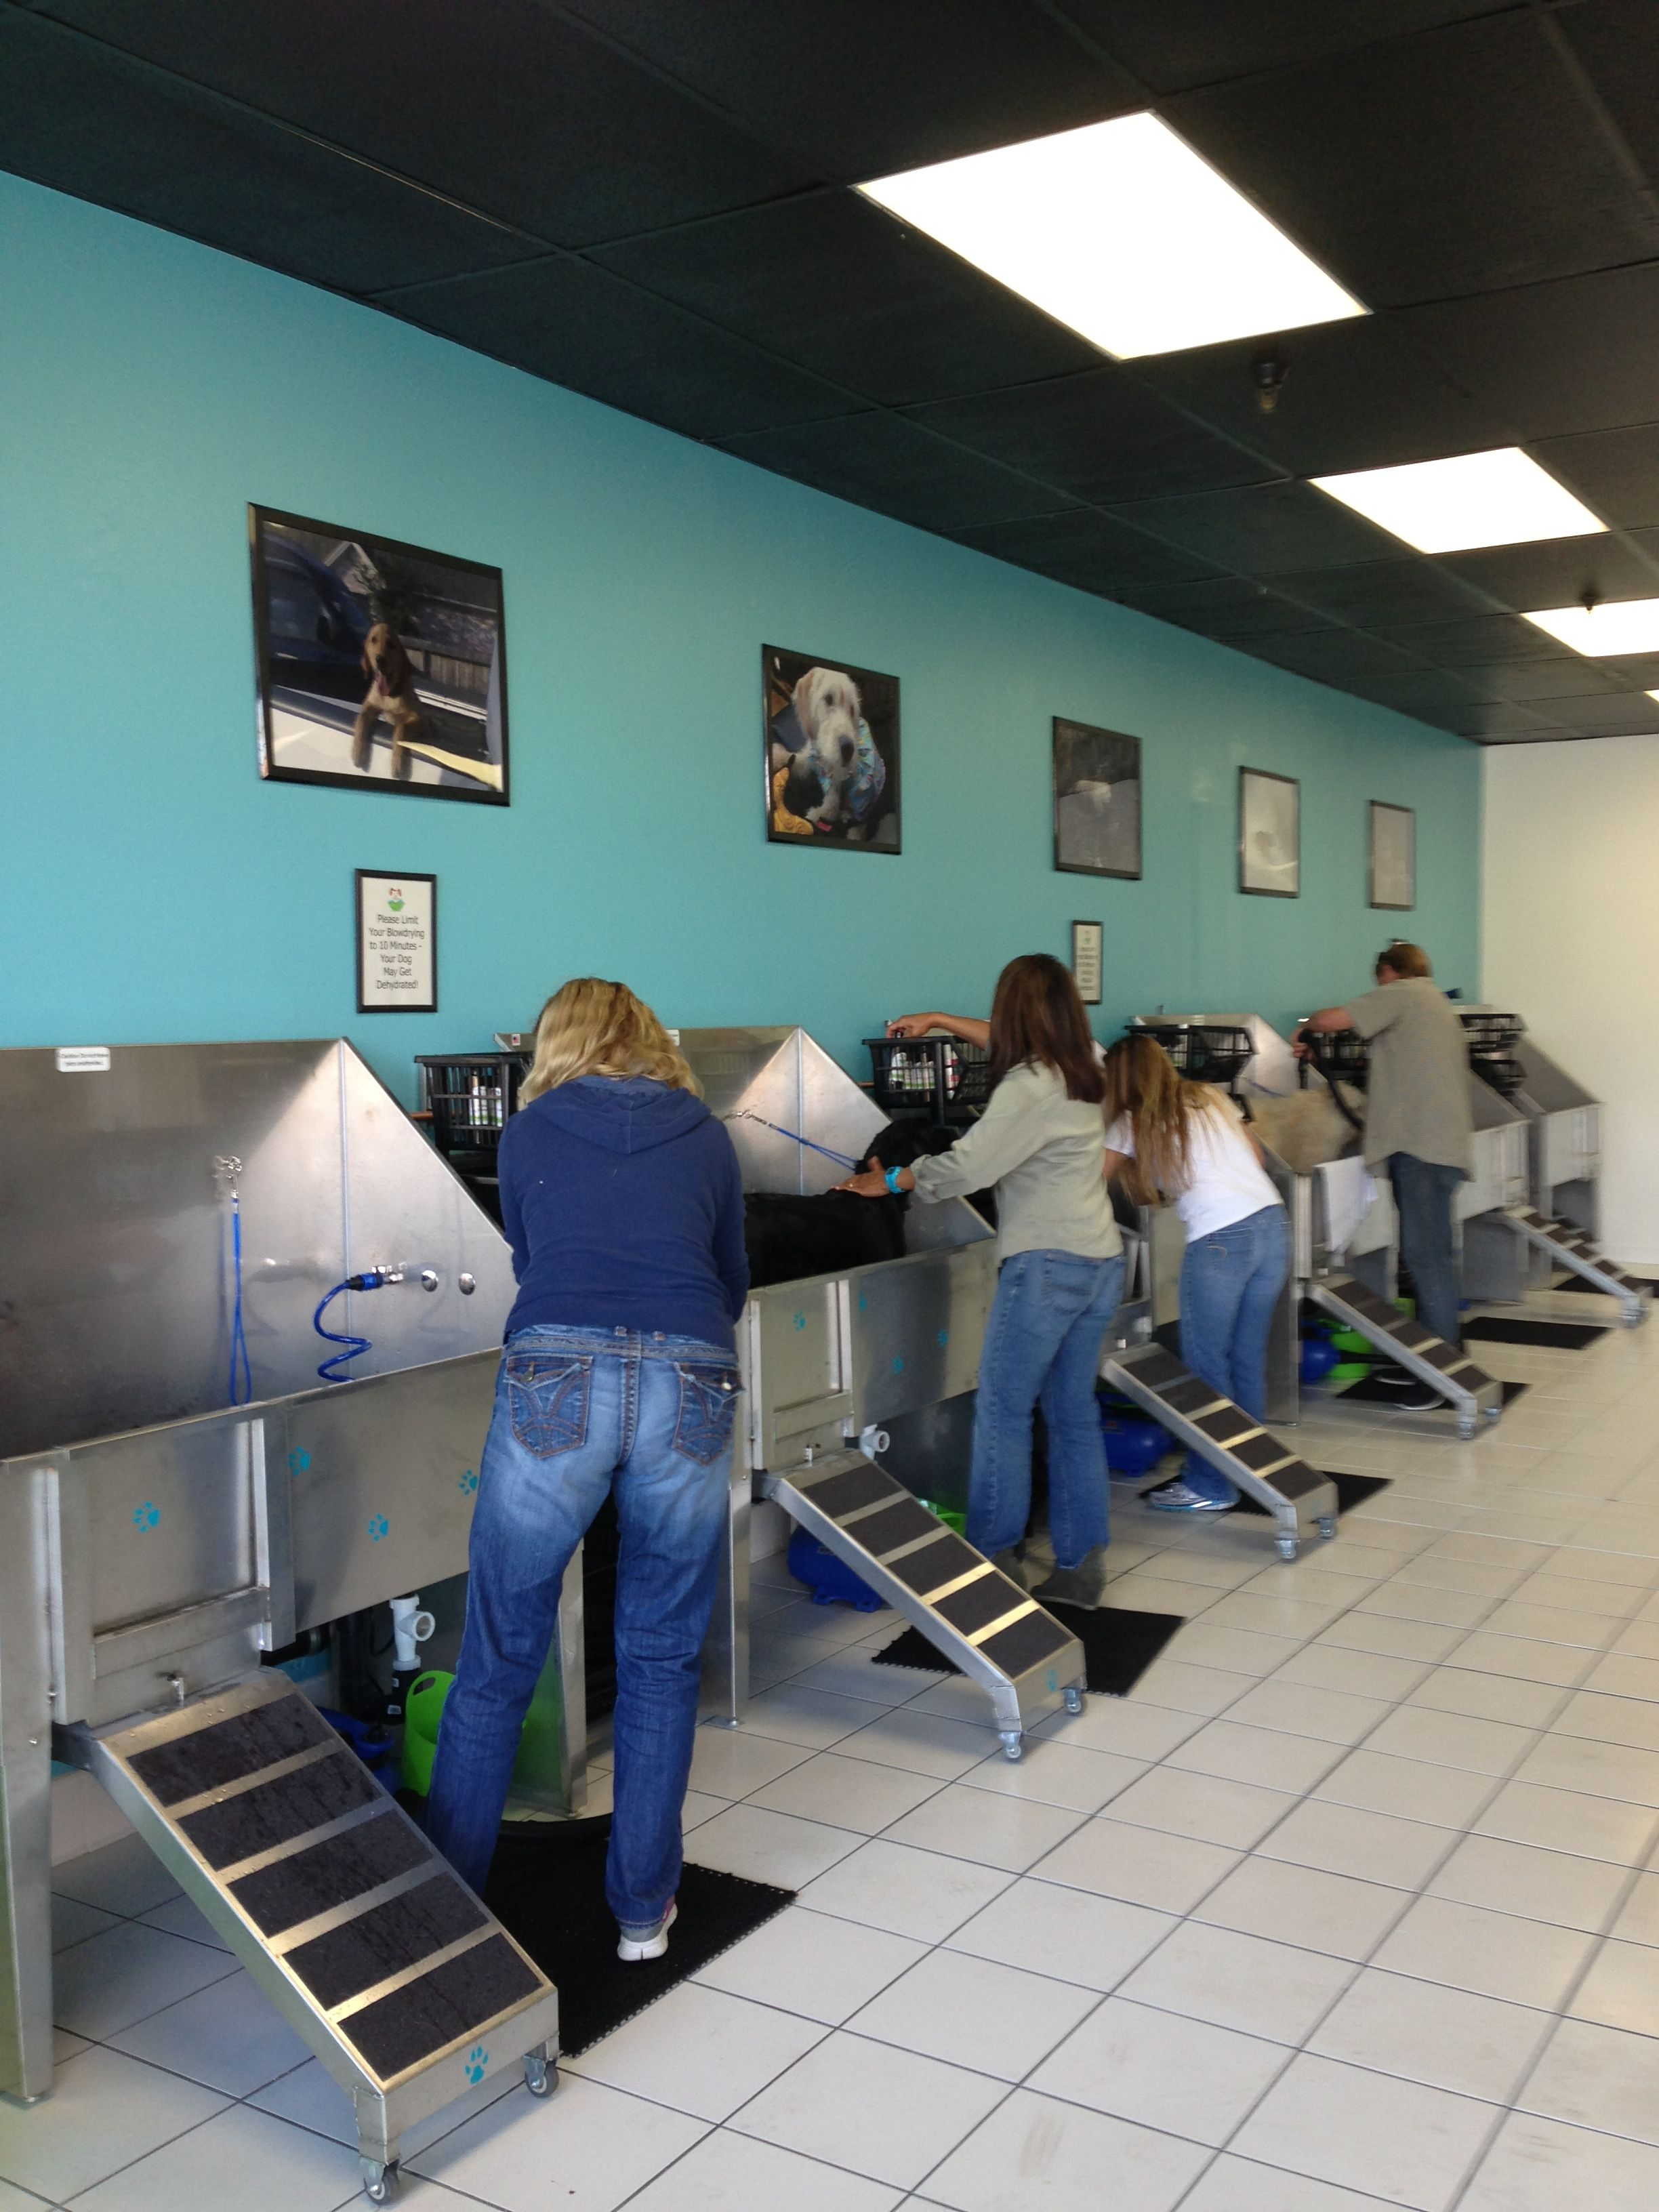 Bark bath self serve dog wash bark bath self serve dog wash bark bath self serve dog wash solutioingenieria Gallery